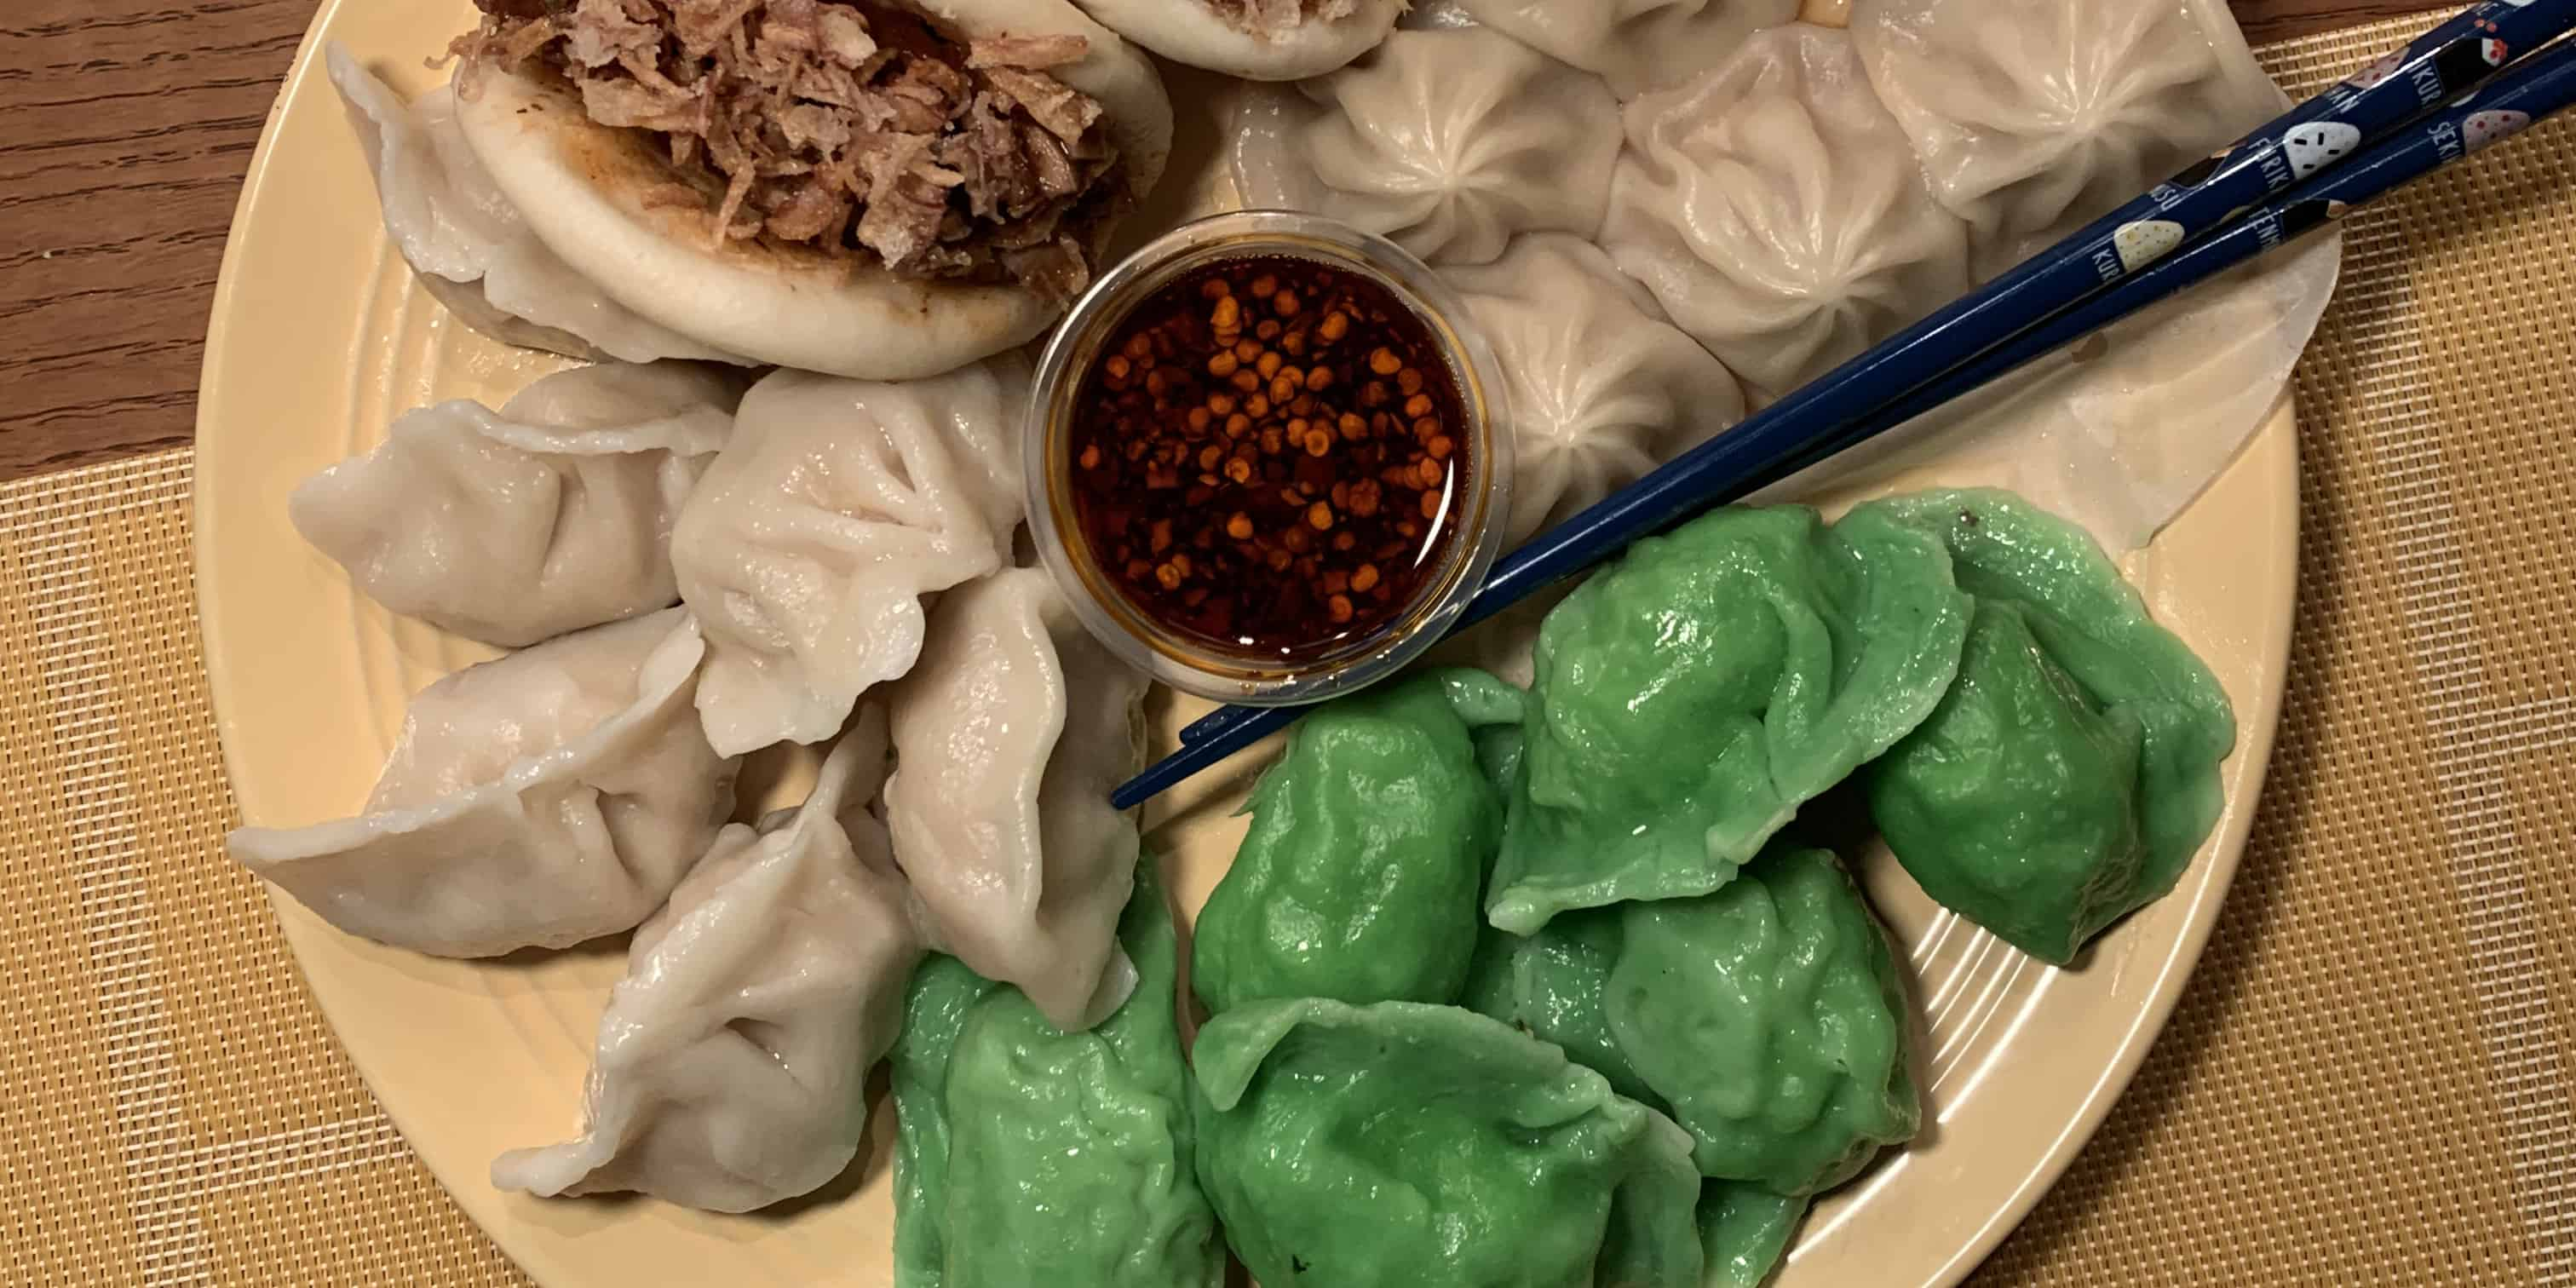 The Best Thing I Ate All Week: Chicken Dumplings from Heritage Asian Eatery